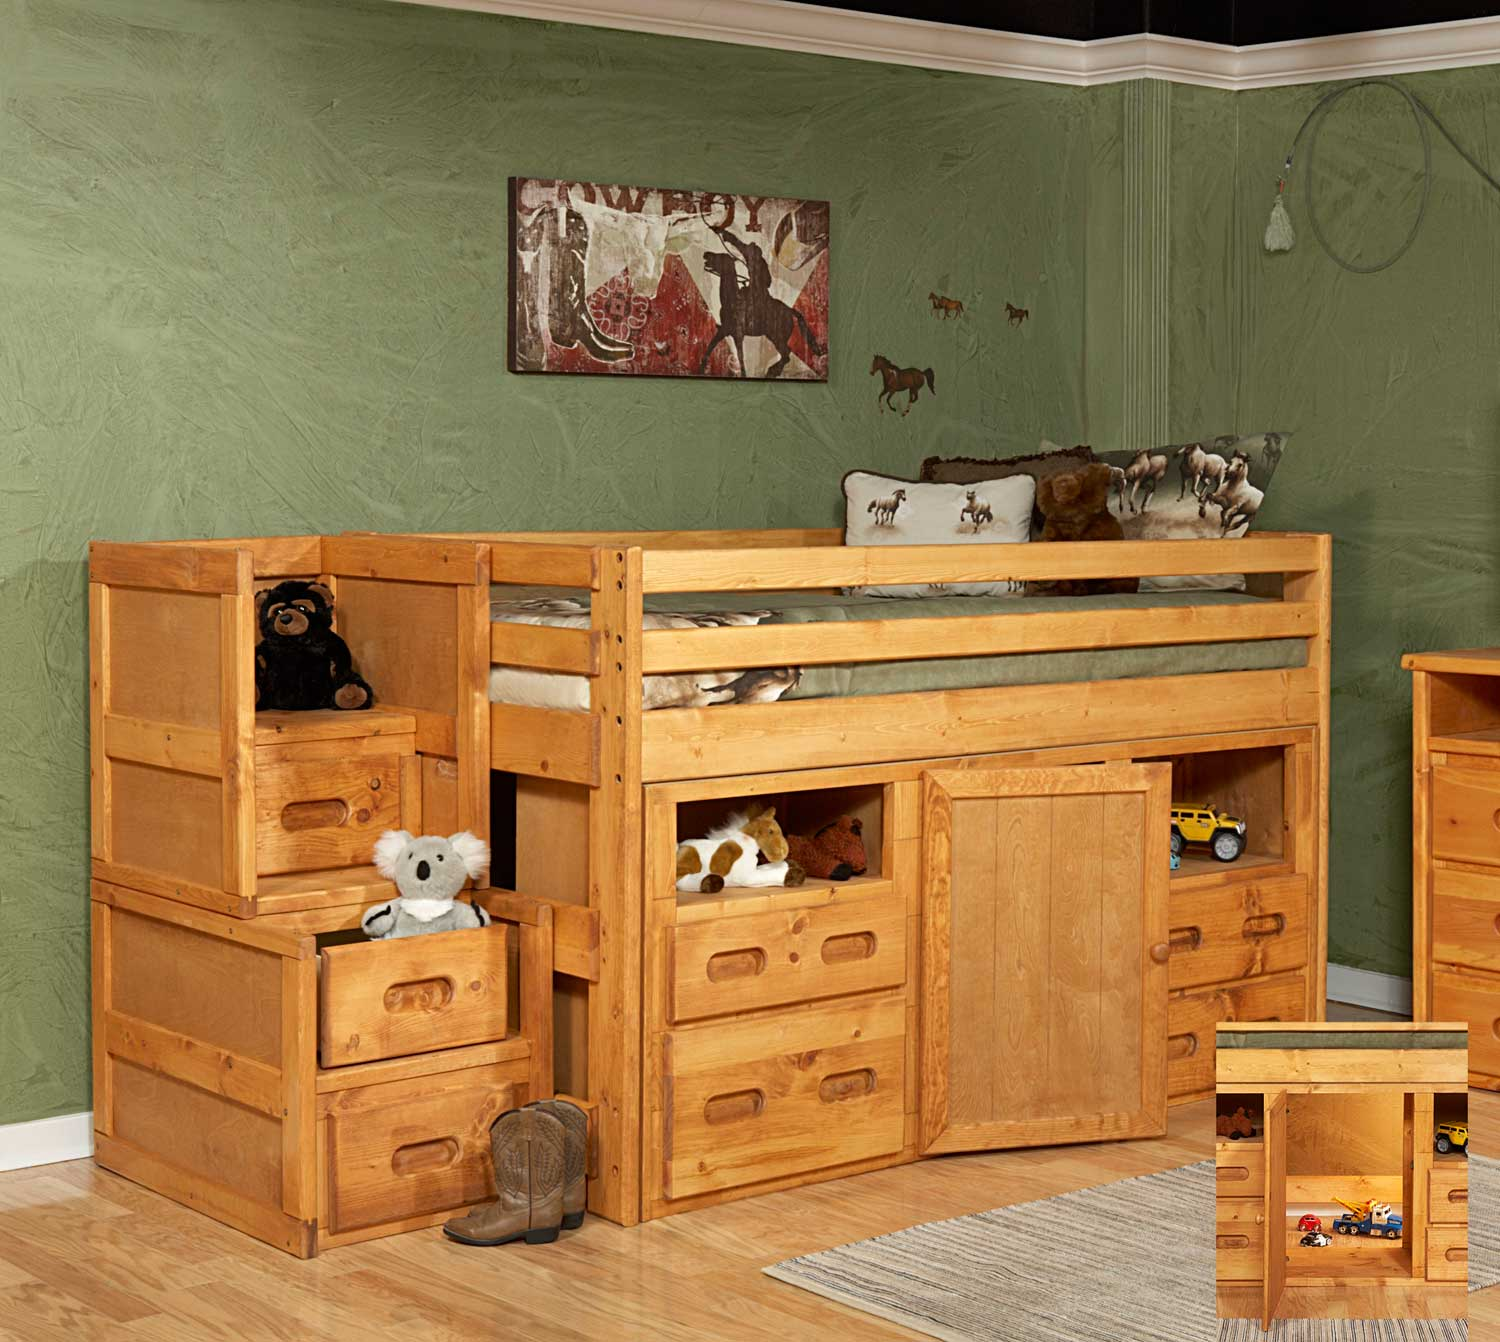 Chelsea Home 3544136-4139 Twin Junior Loft Bed with Storage and Stairway Chest - Cinnamon